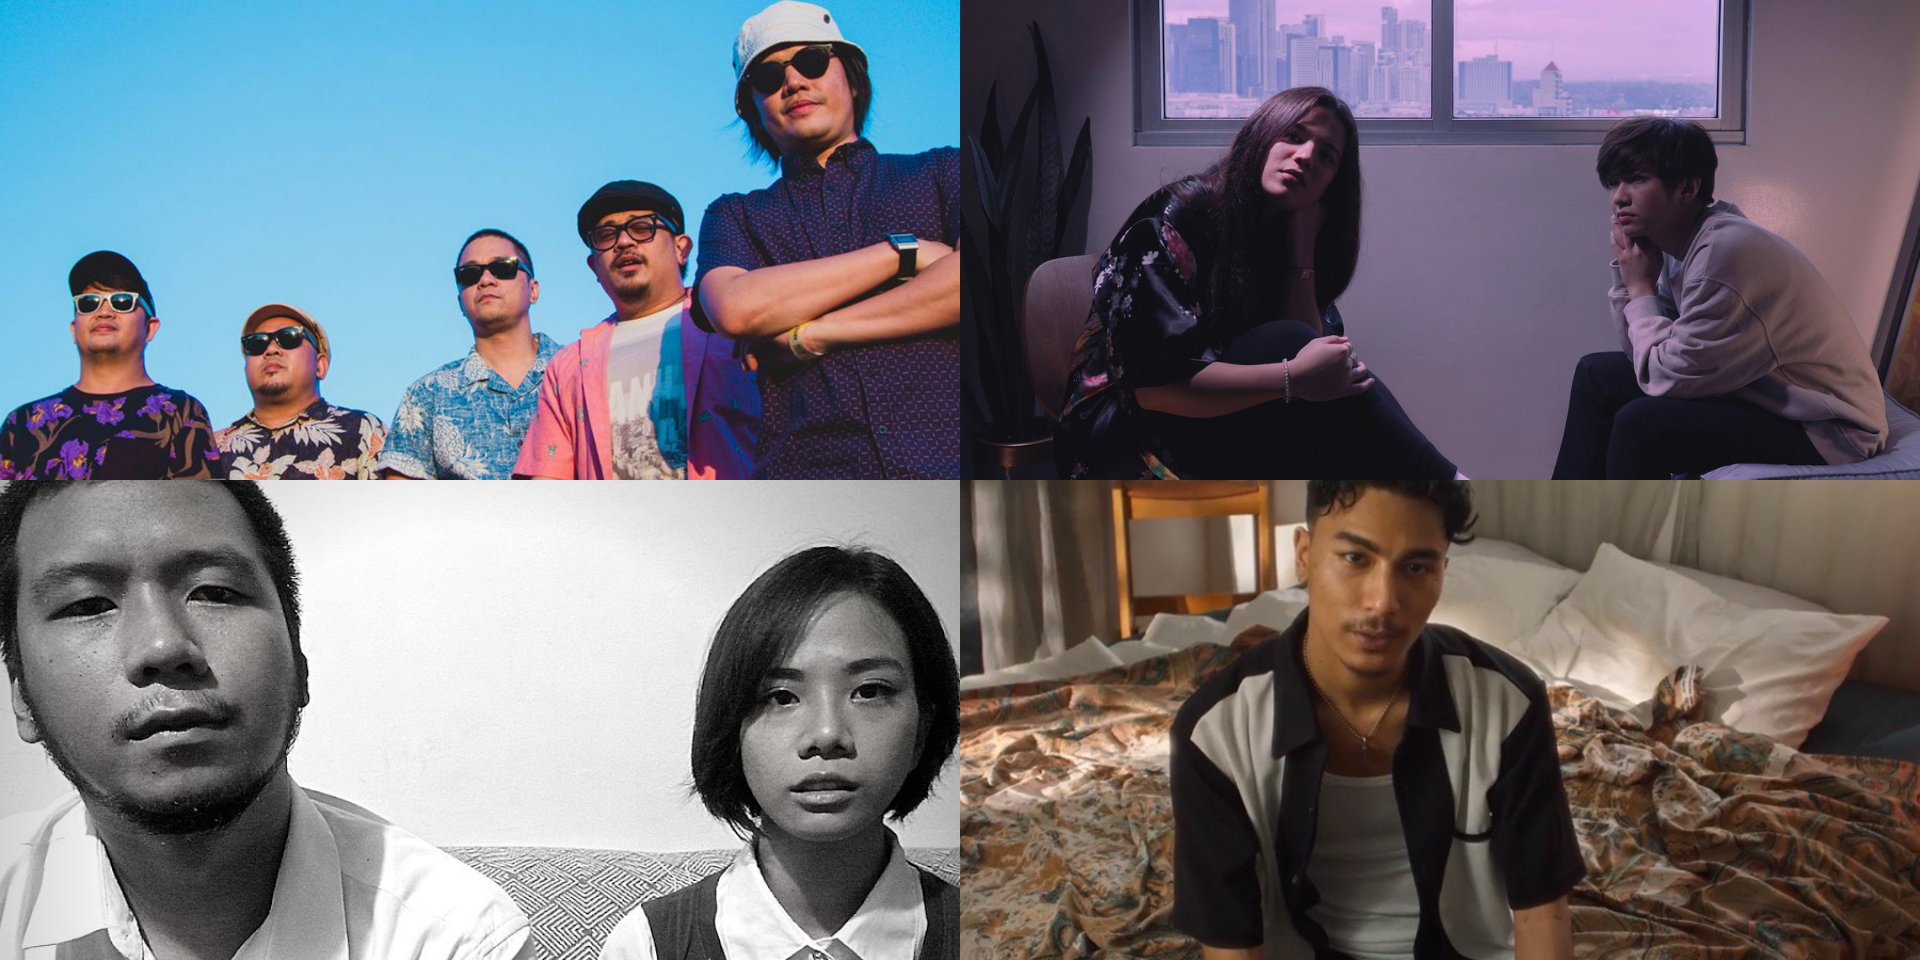 Pedicab, Leanne & Naara, Jason Dhakal, Project Yazz, and more to perform at Fête de la Musique Philippines 2021